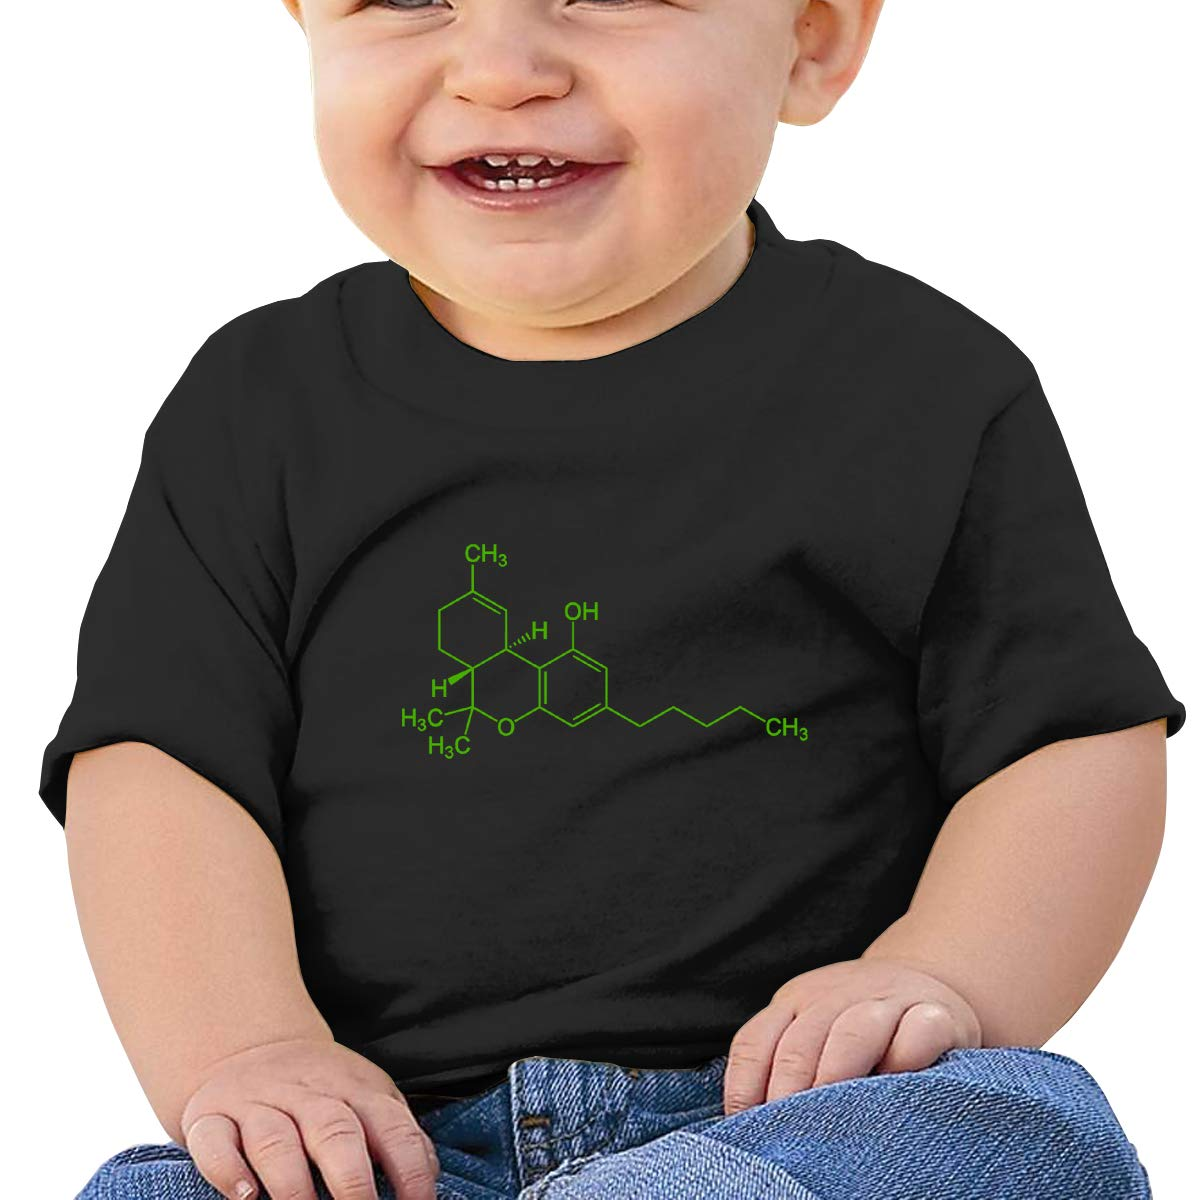 THC Molecule Weed Cannabis Logo Baby T-Shirt Baby Boy Girl Cotton T Shirts Comfort Tops for 6M-2T Baby